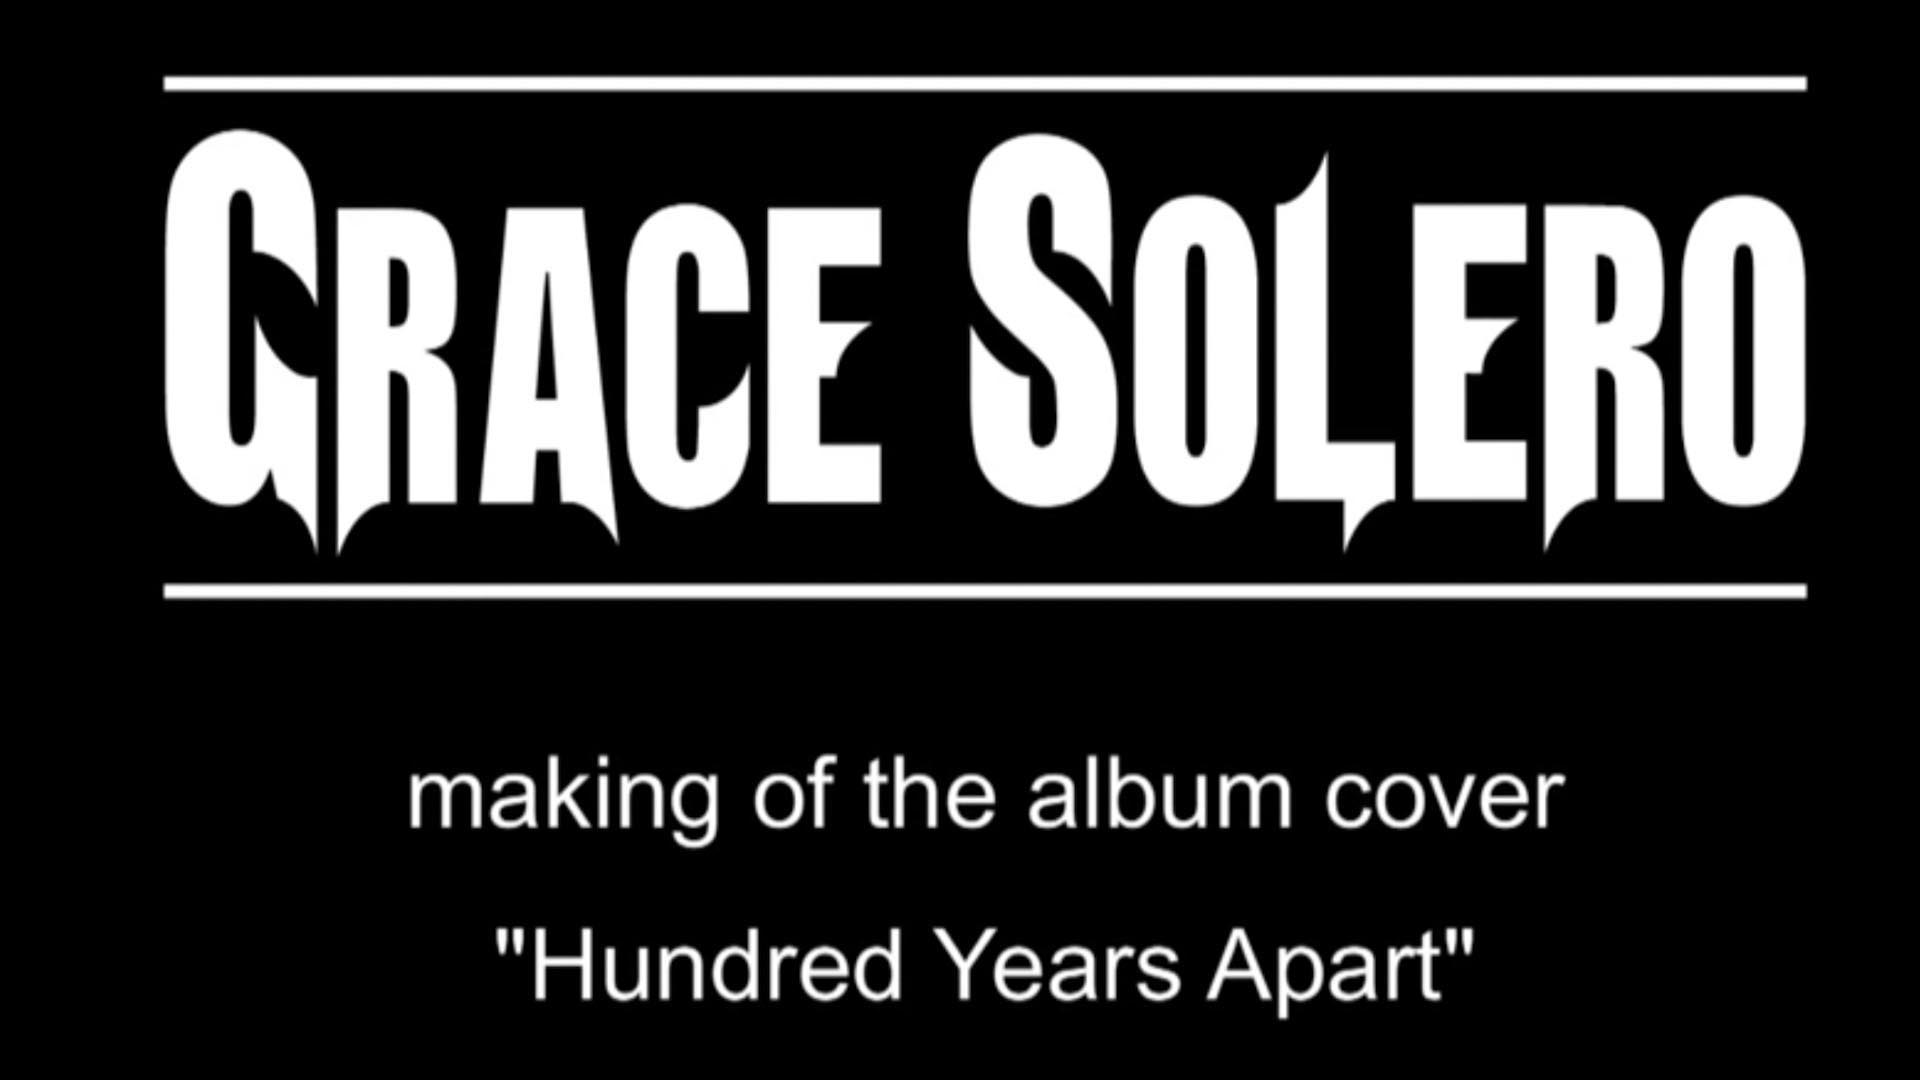 GRACE_SOLERO_making_the_album_cover_Hundred_Years_Apart